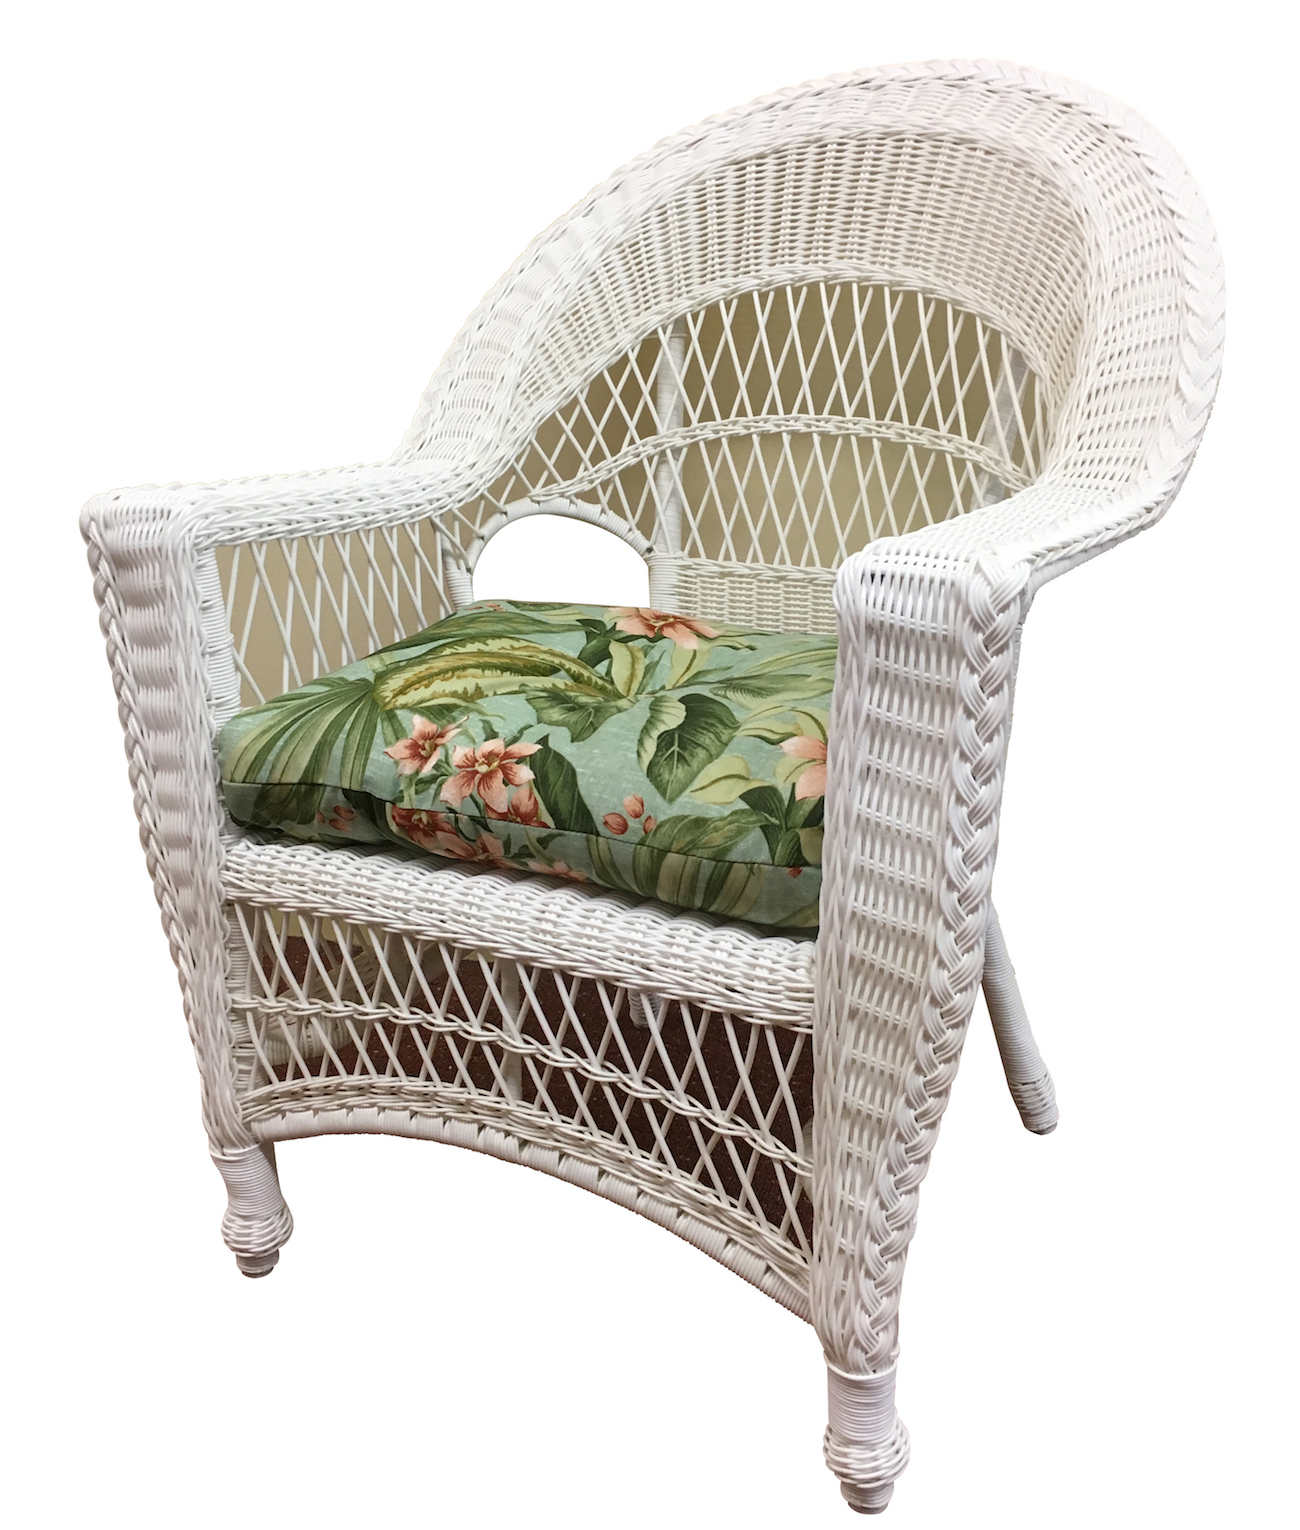 Outdoor Wicker Chair Cape Cod